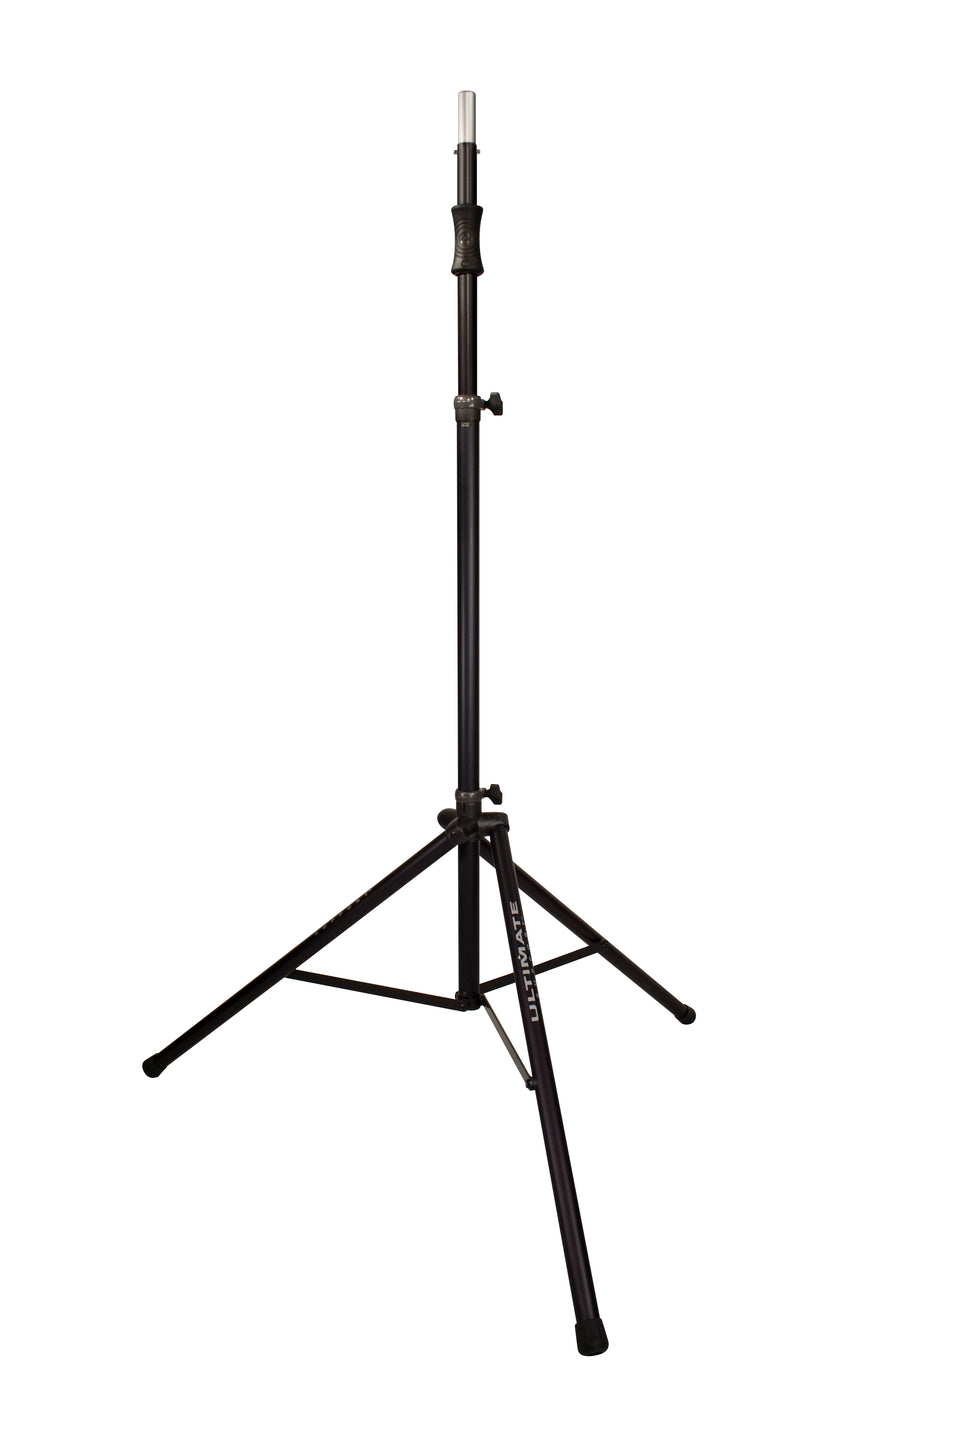 Ultimate Support TS-110B Air-Powered Series Lift-Assist Speaker Stand - Extra Tall